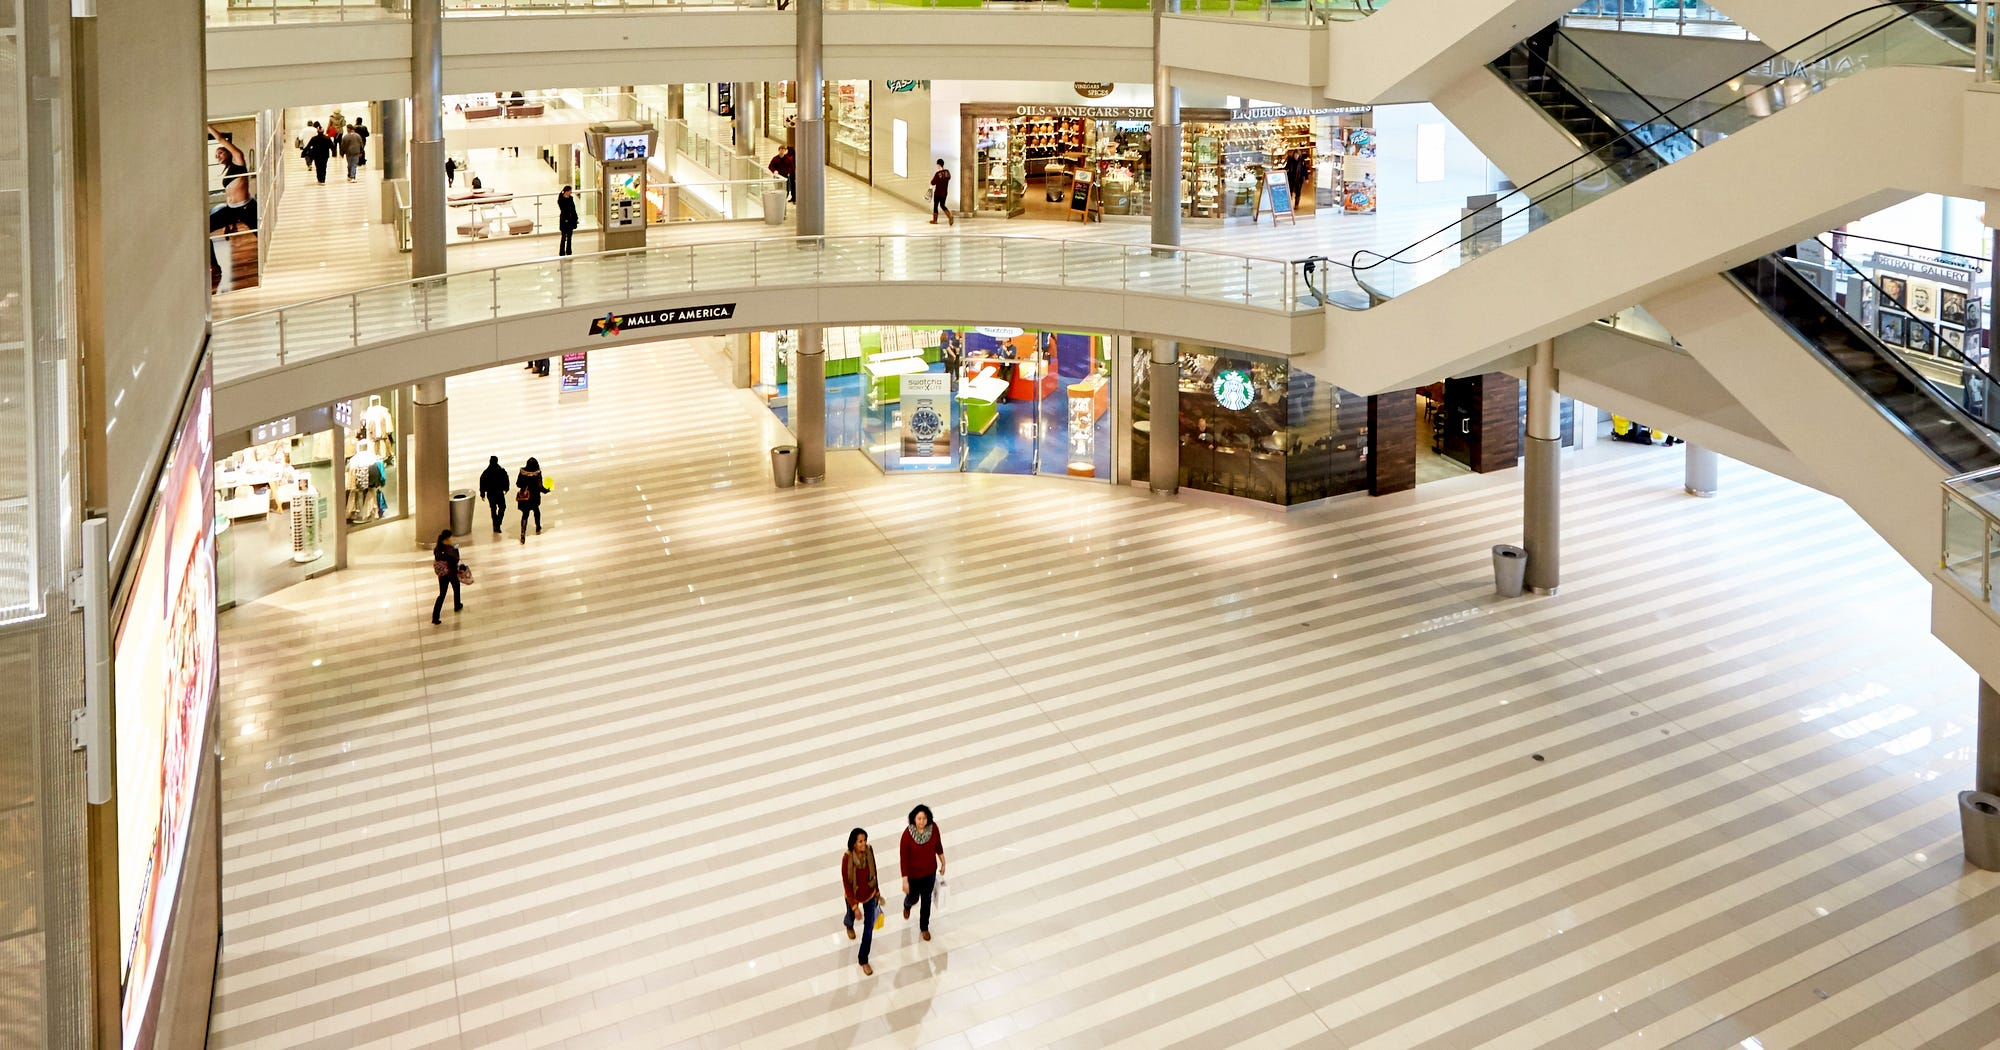 Death Of Shopping Malls - Mall Of America Popularity